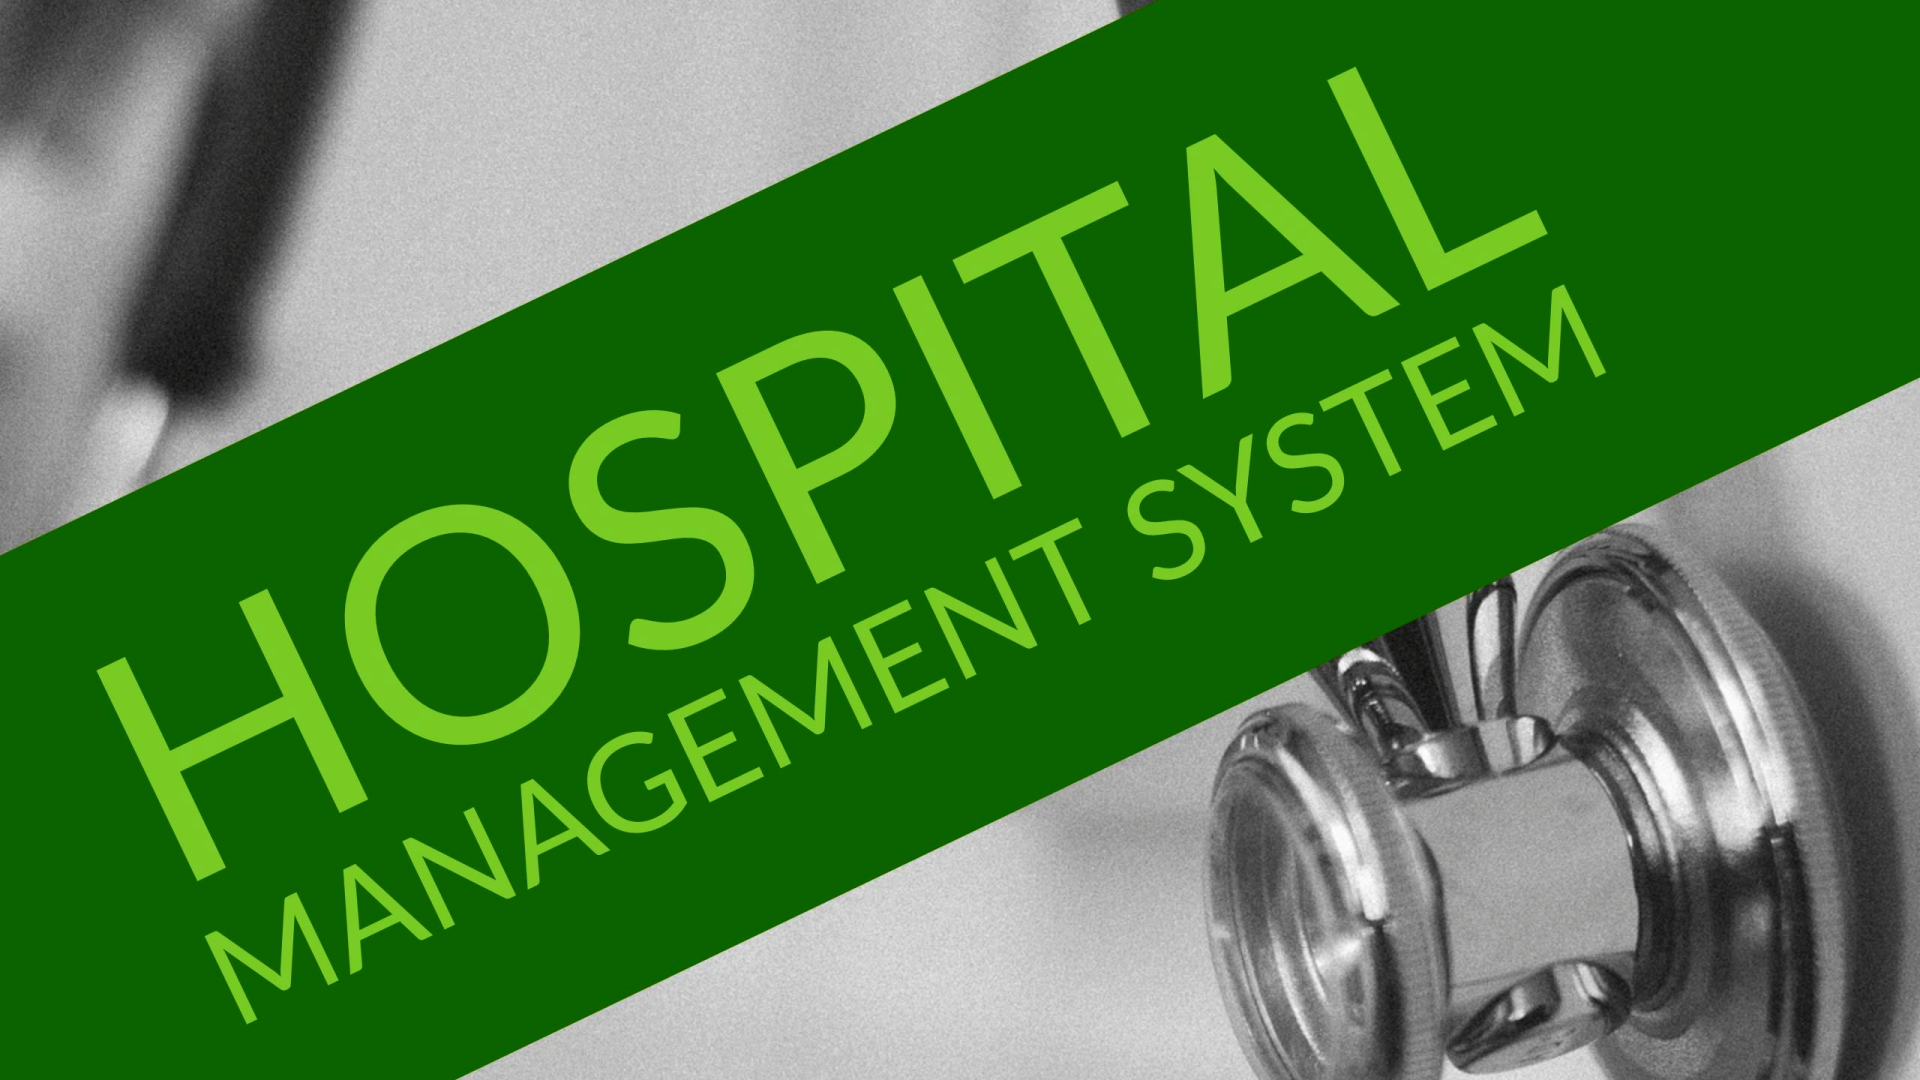 Why The Best Hospitals Are Managed by Doctors